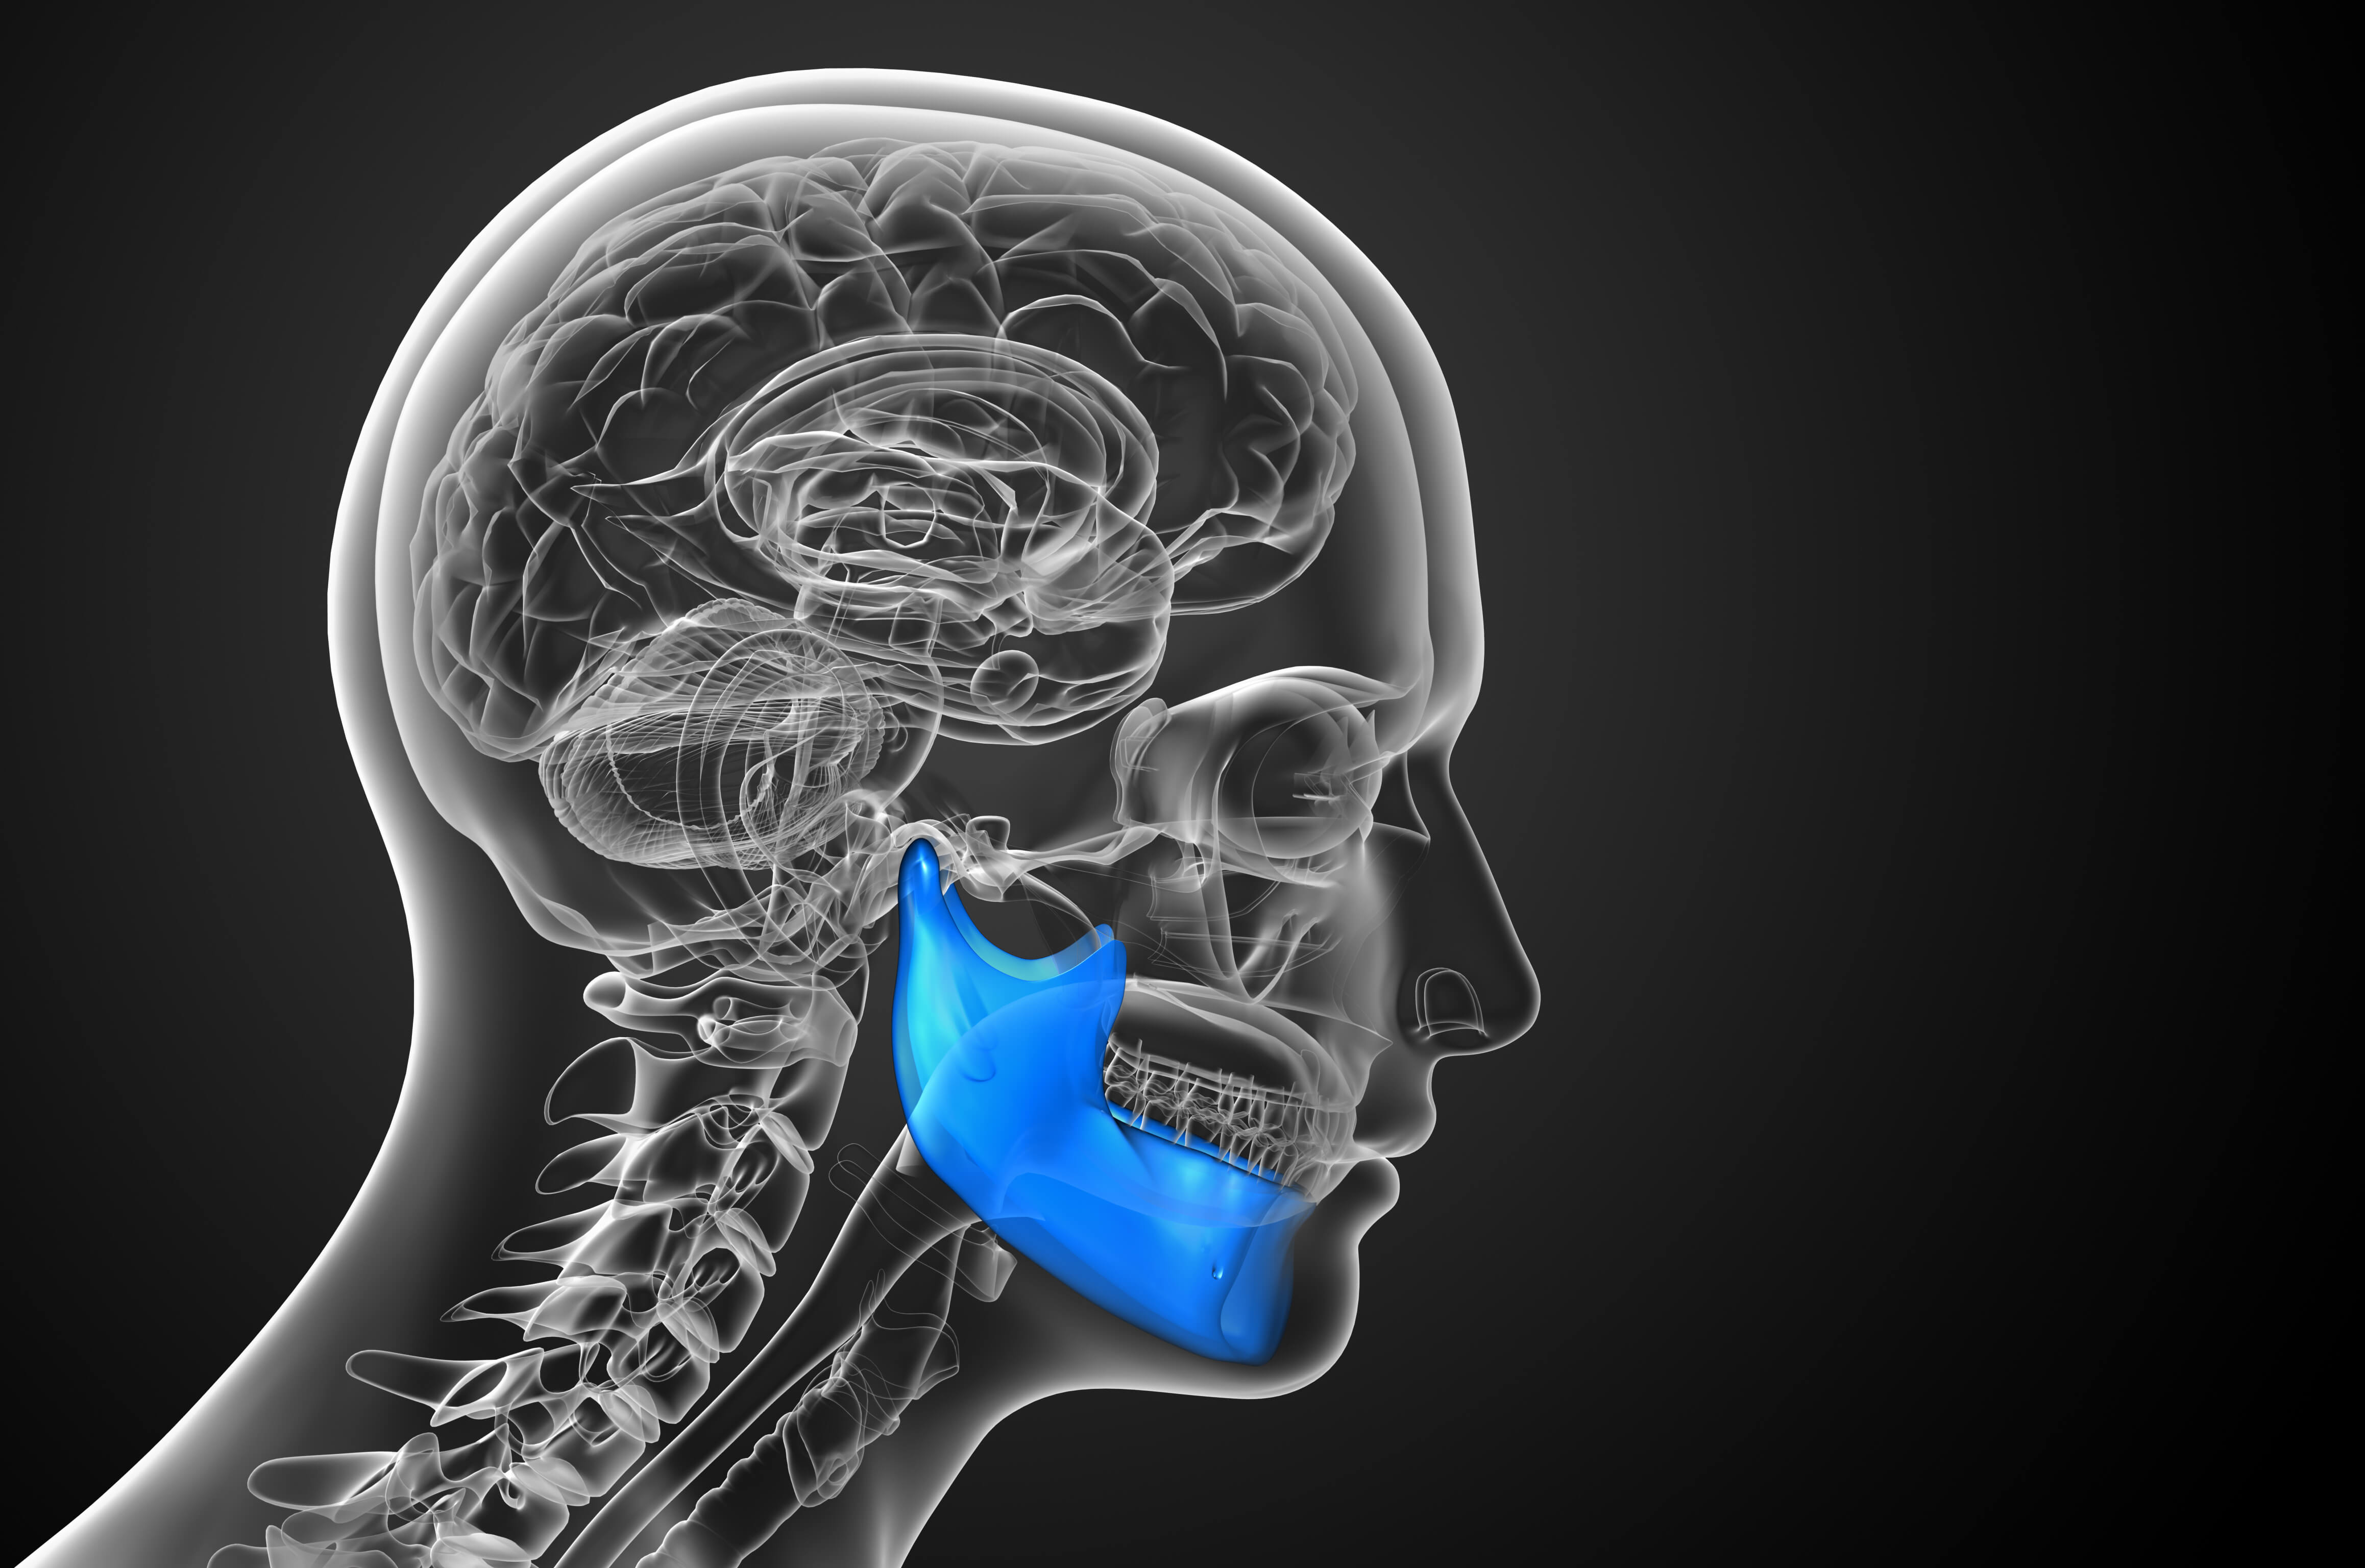 realign your misaligned jaw and book an appointment with an orthodontist